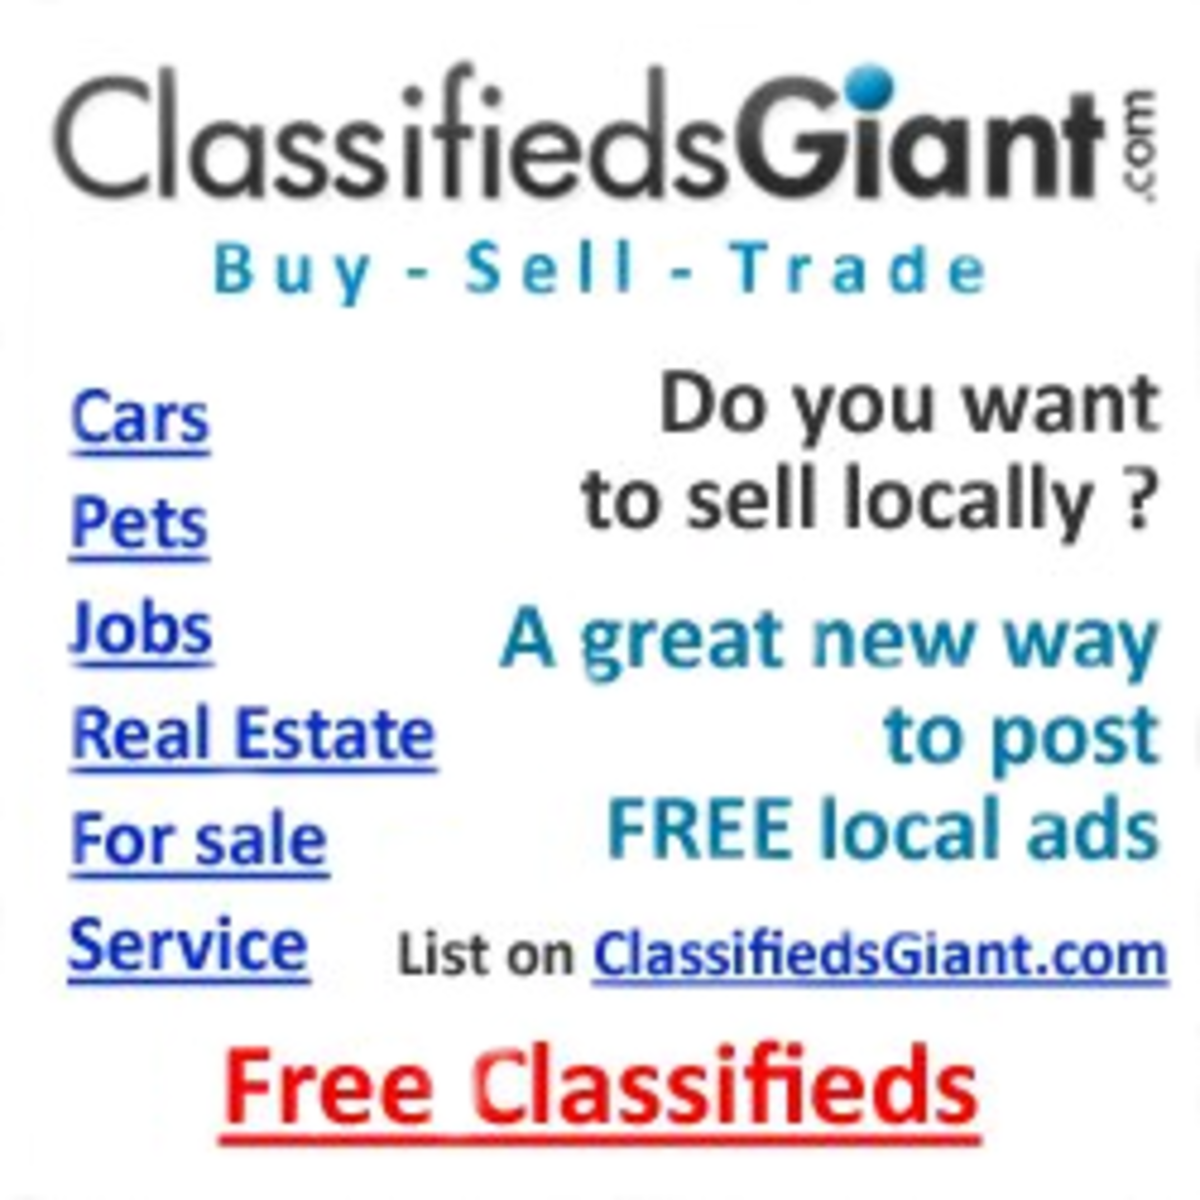 11 Sites Like Craigslist: More Classified Ad Websites